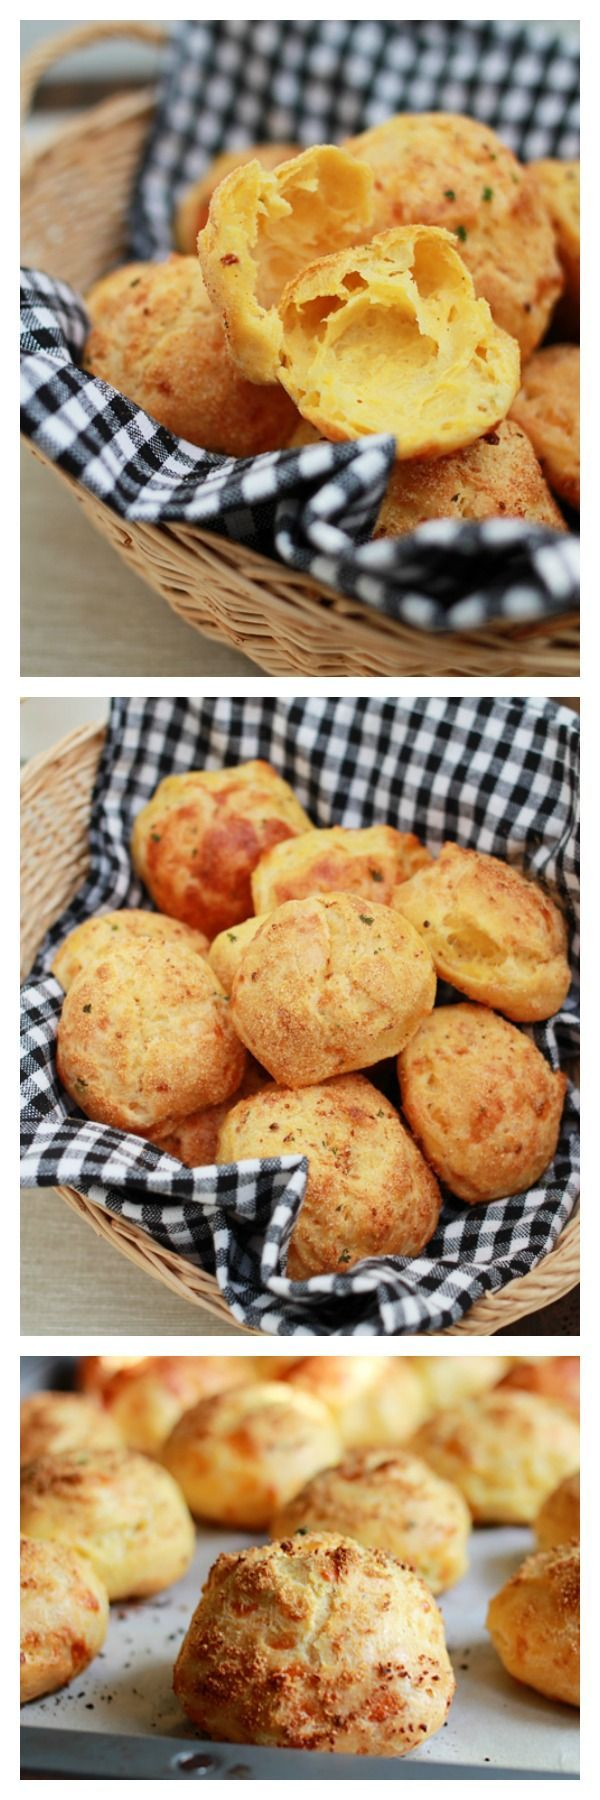 Gougeres - French Cheese Puffs - #yum #foodgasm #foodporn